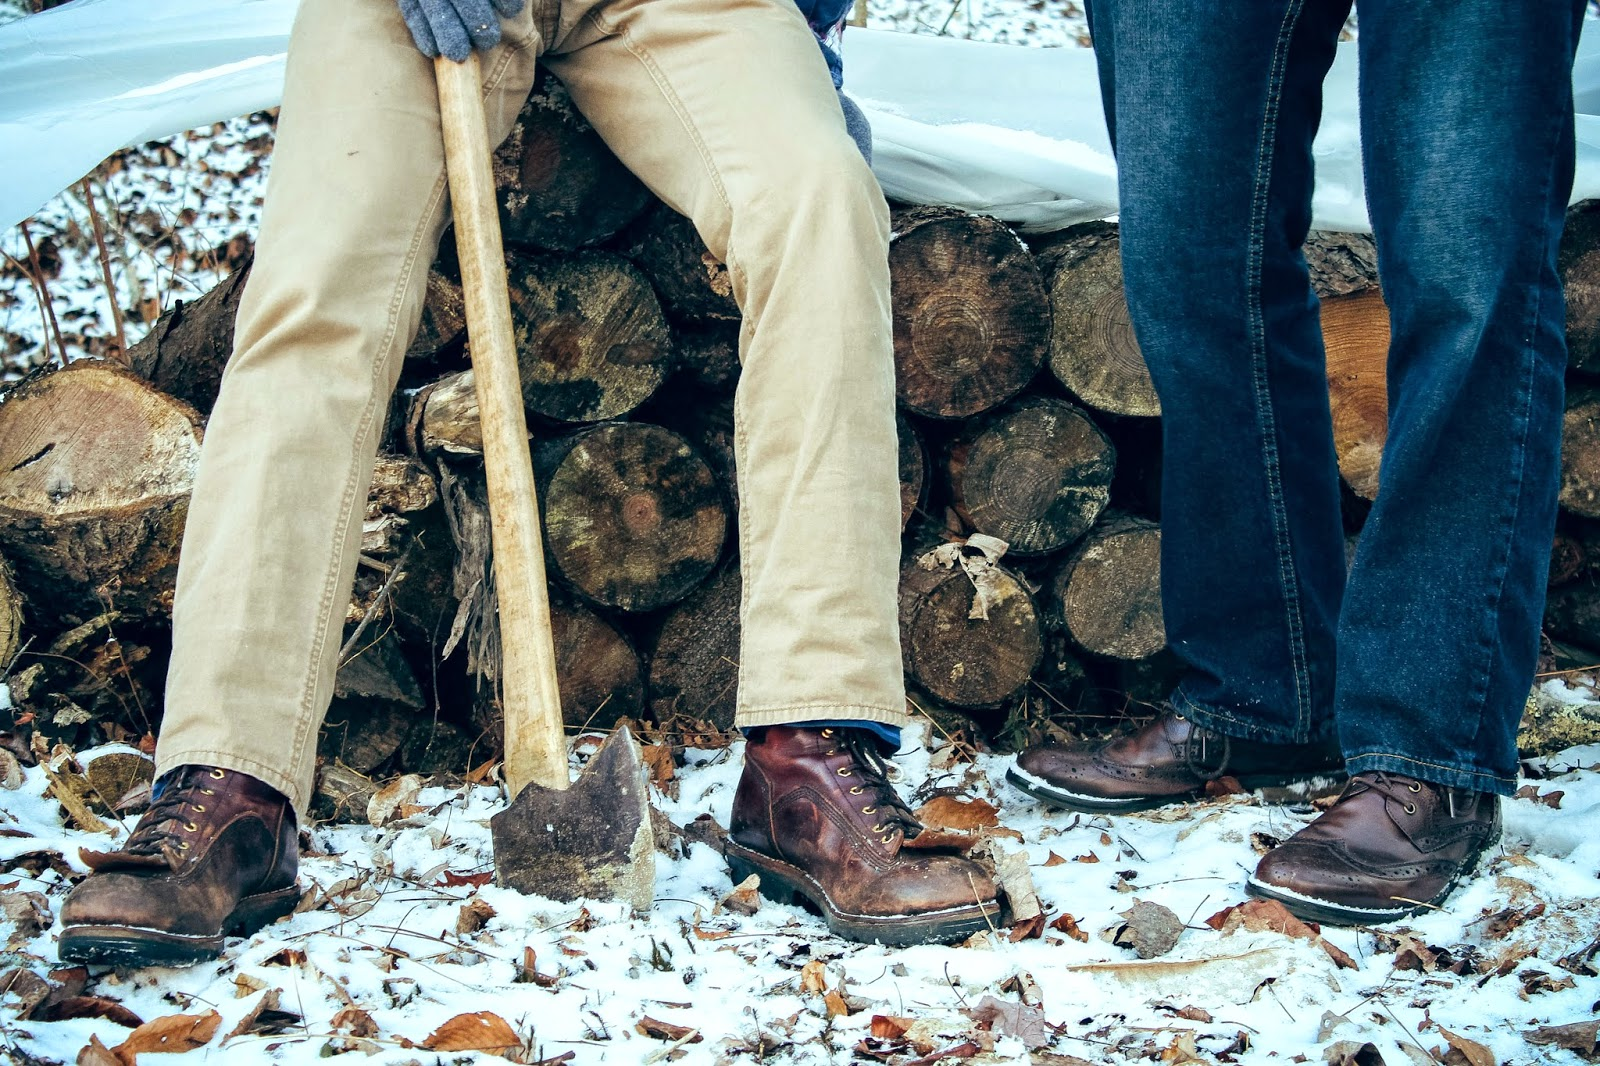 are we out of the woods yet snow georgia outdoors winter photography ax axe leather boots shoes wood brown jeans khaki pants friends models men